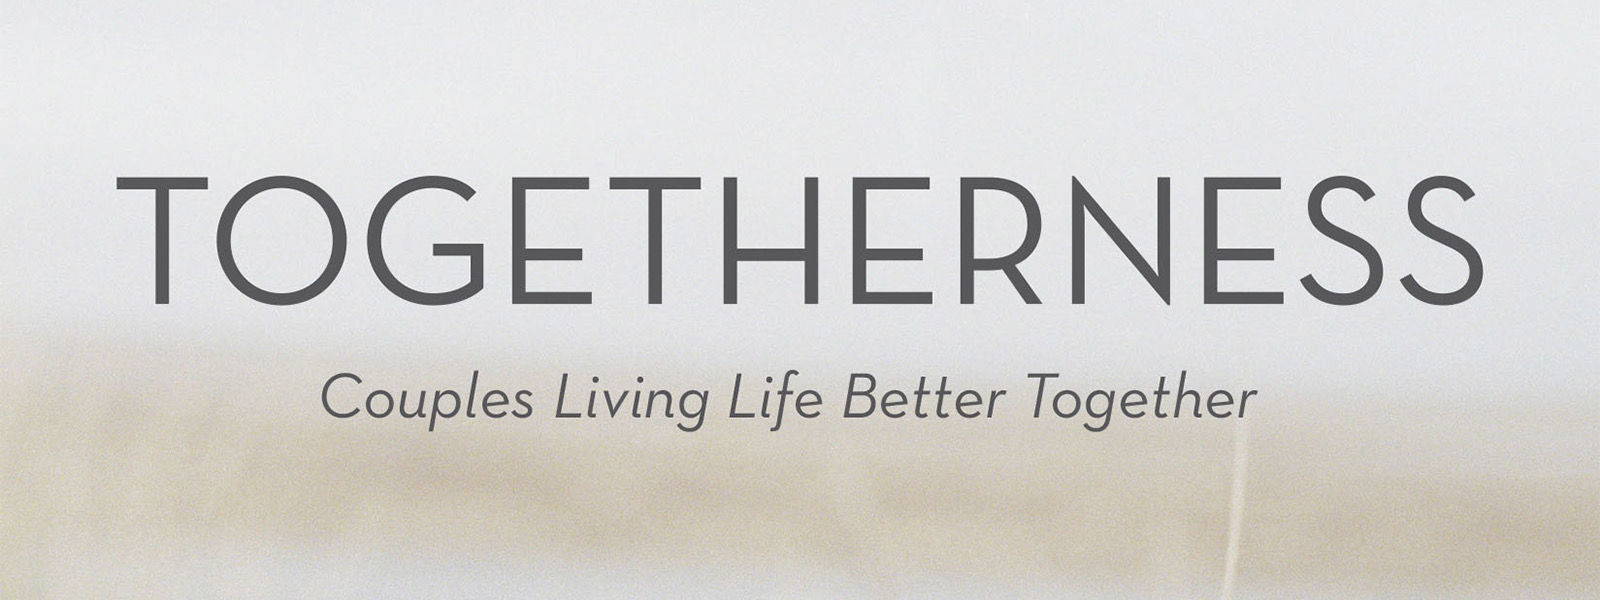 Togetherness: Couples Living Life Better Together